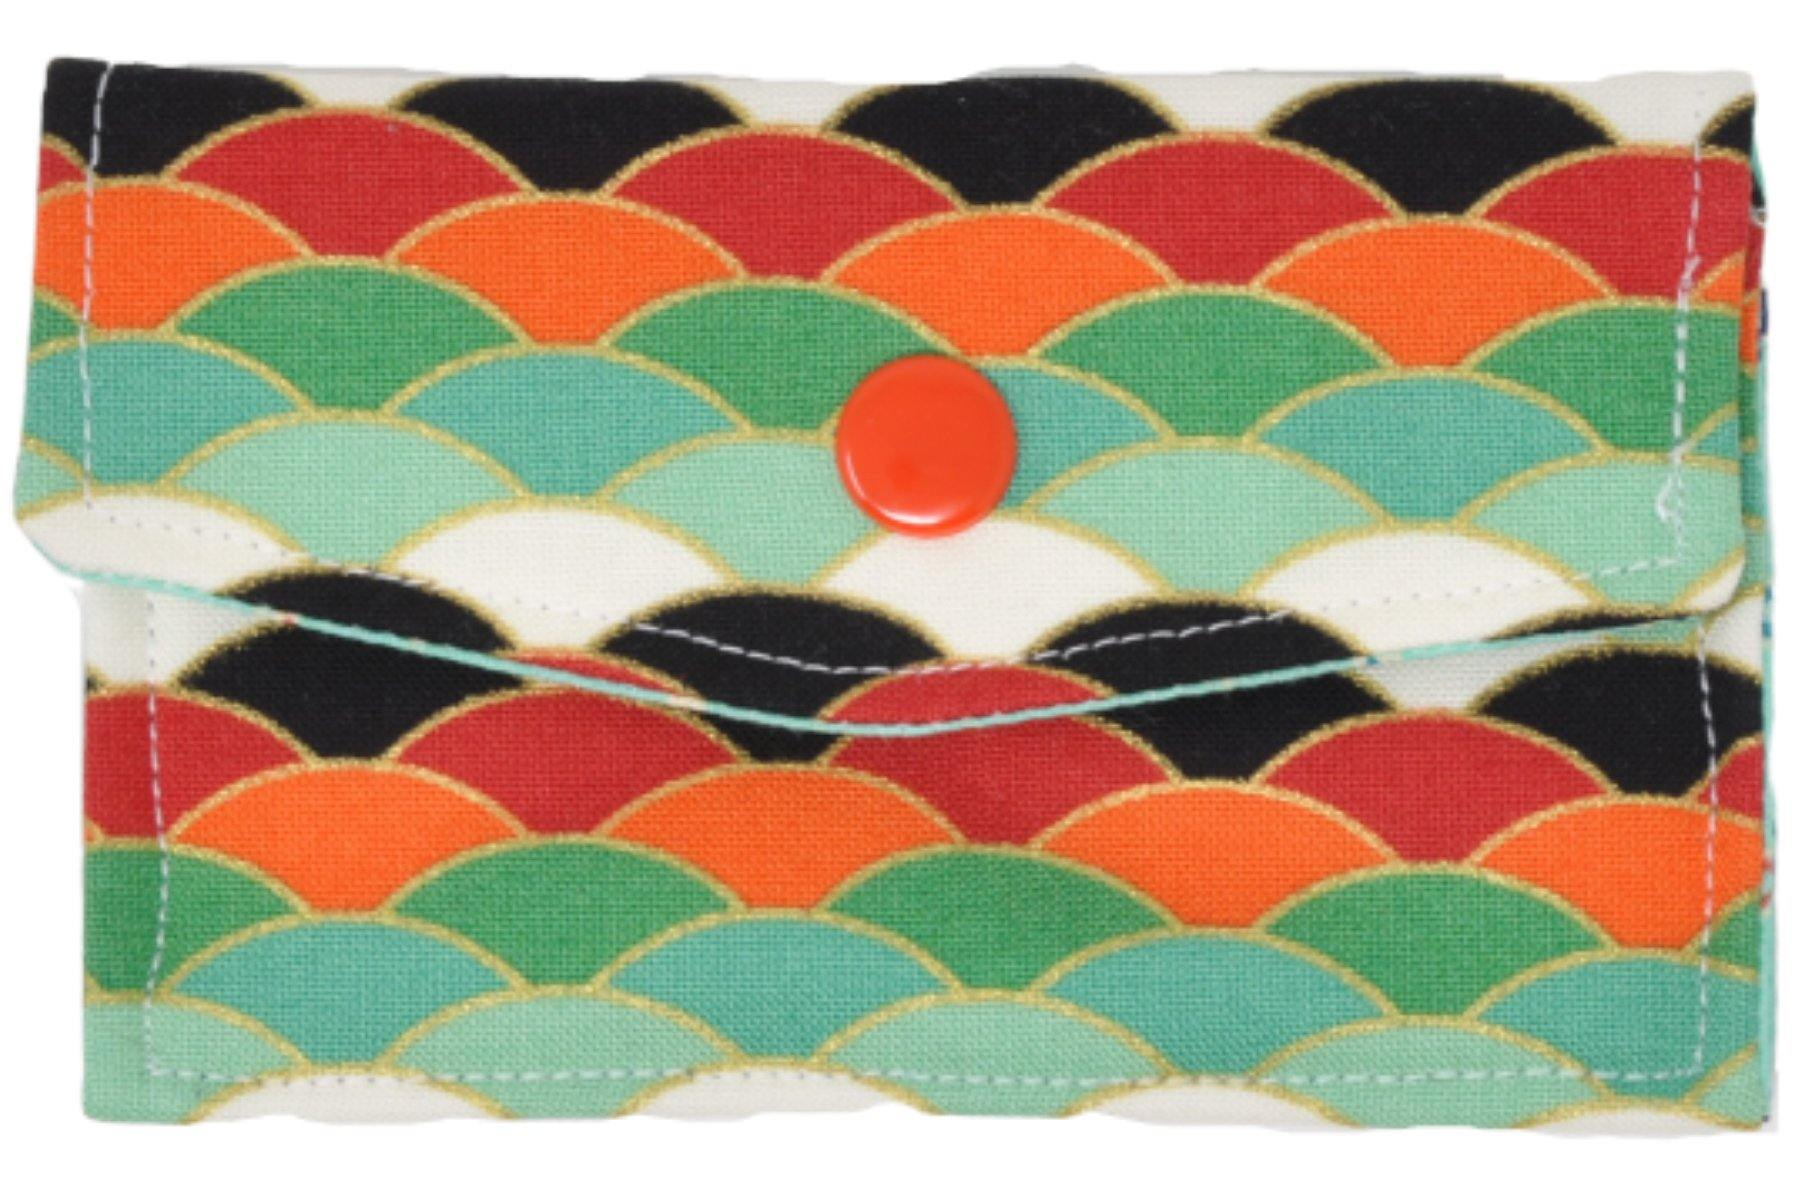 Kimono Delight Card Holder - Momako Designs